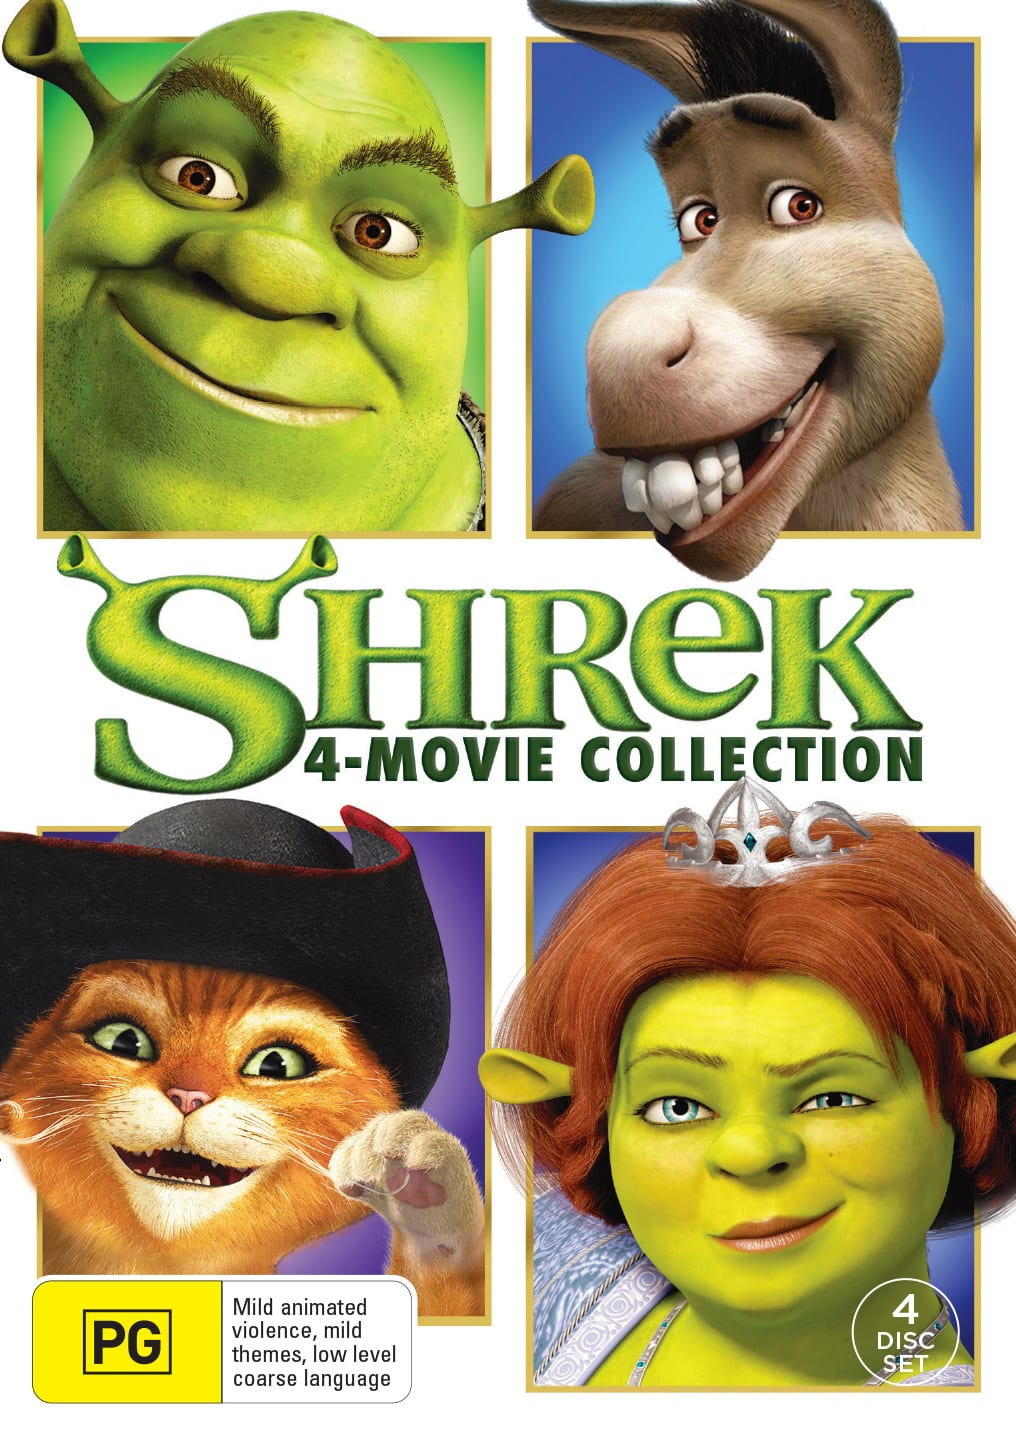 Shrek: The 4-movie Collection (Box Set) [DVD]